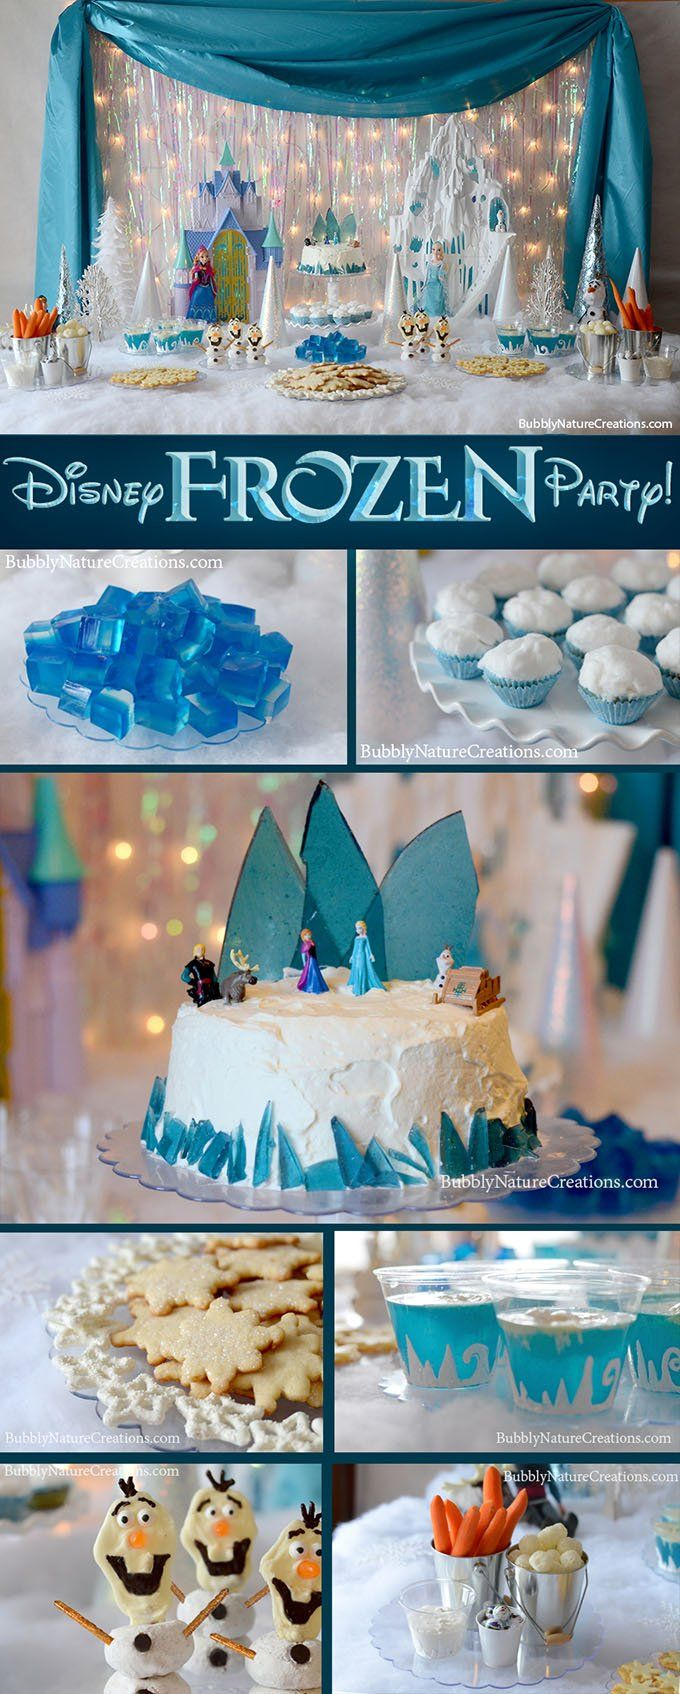 Disney Frozen Party! The Ultimate FROZEN party full of the best ideas! Includes Frozen cake, Frozen recipes and Frozen activities!   The Fro...